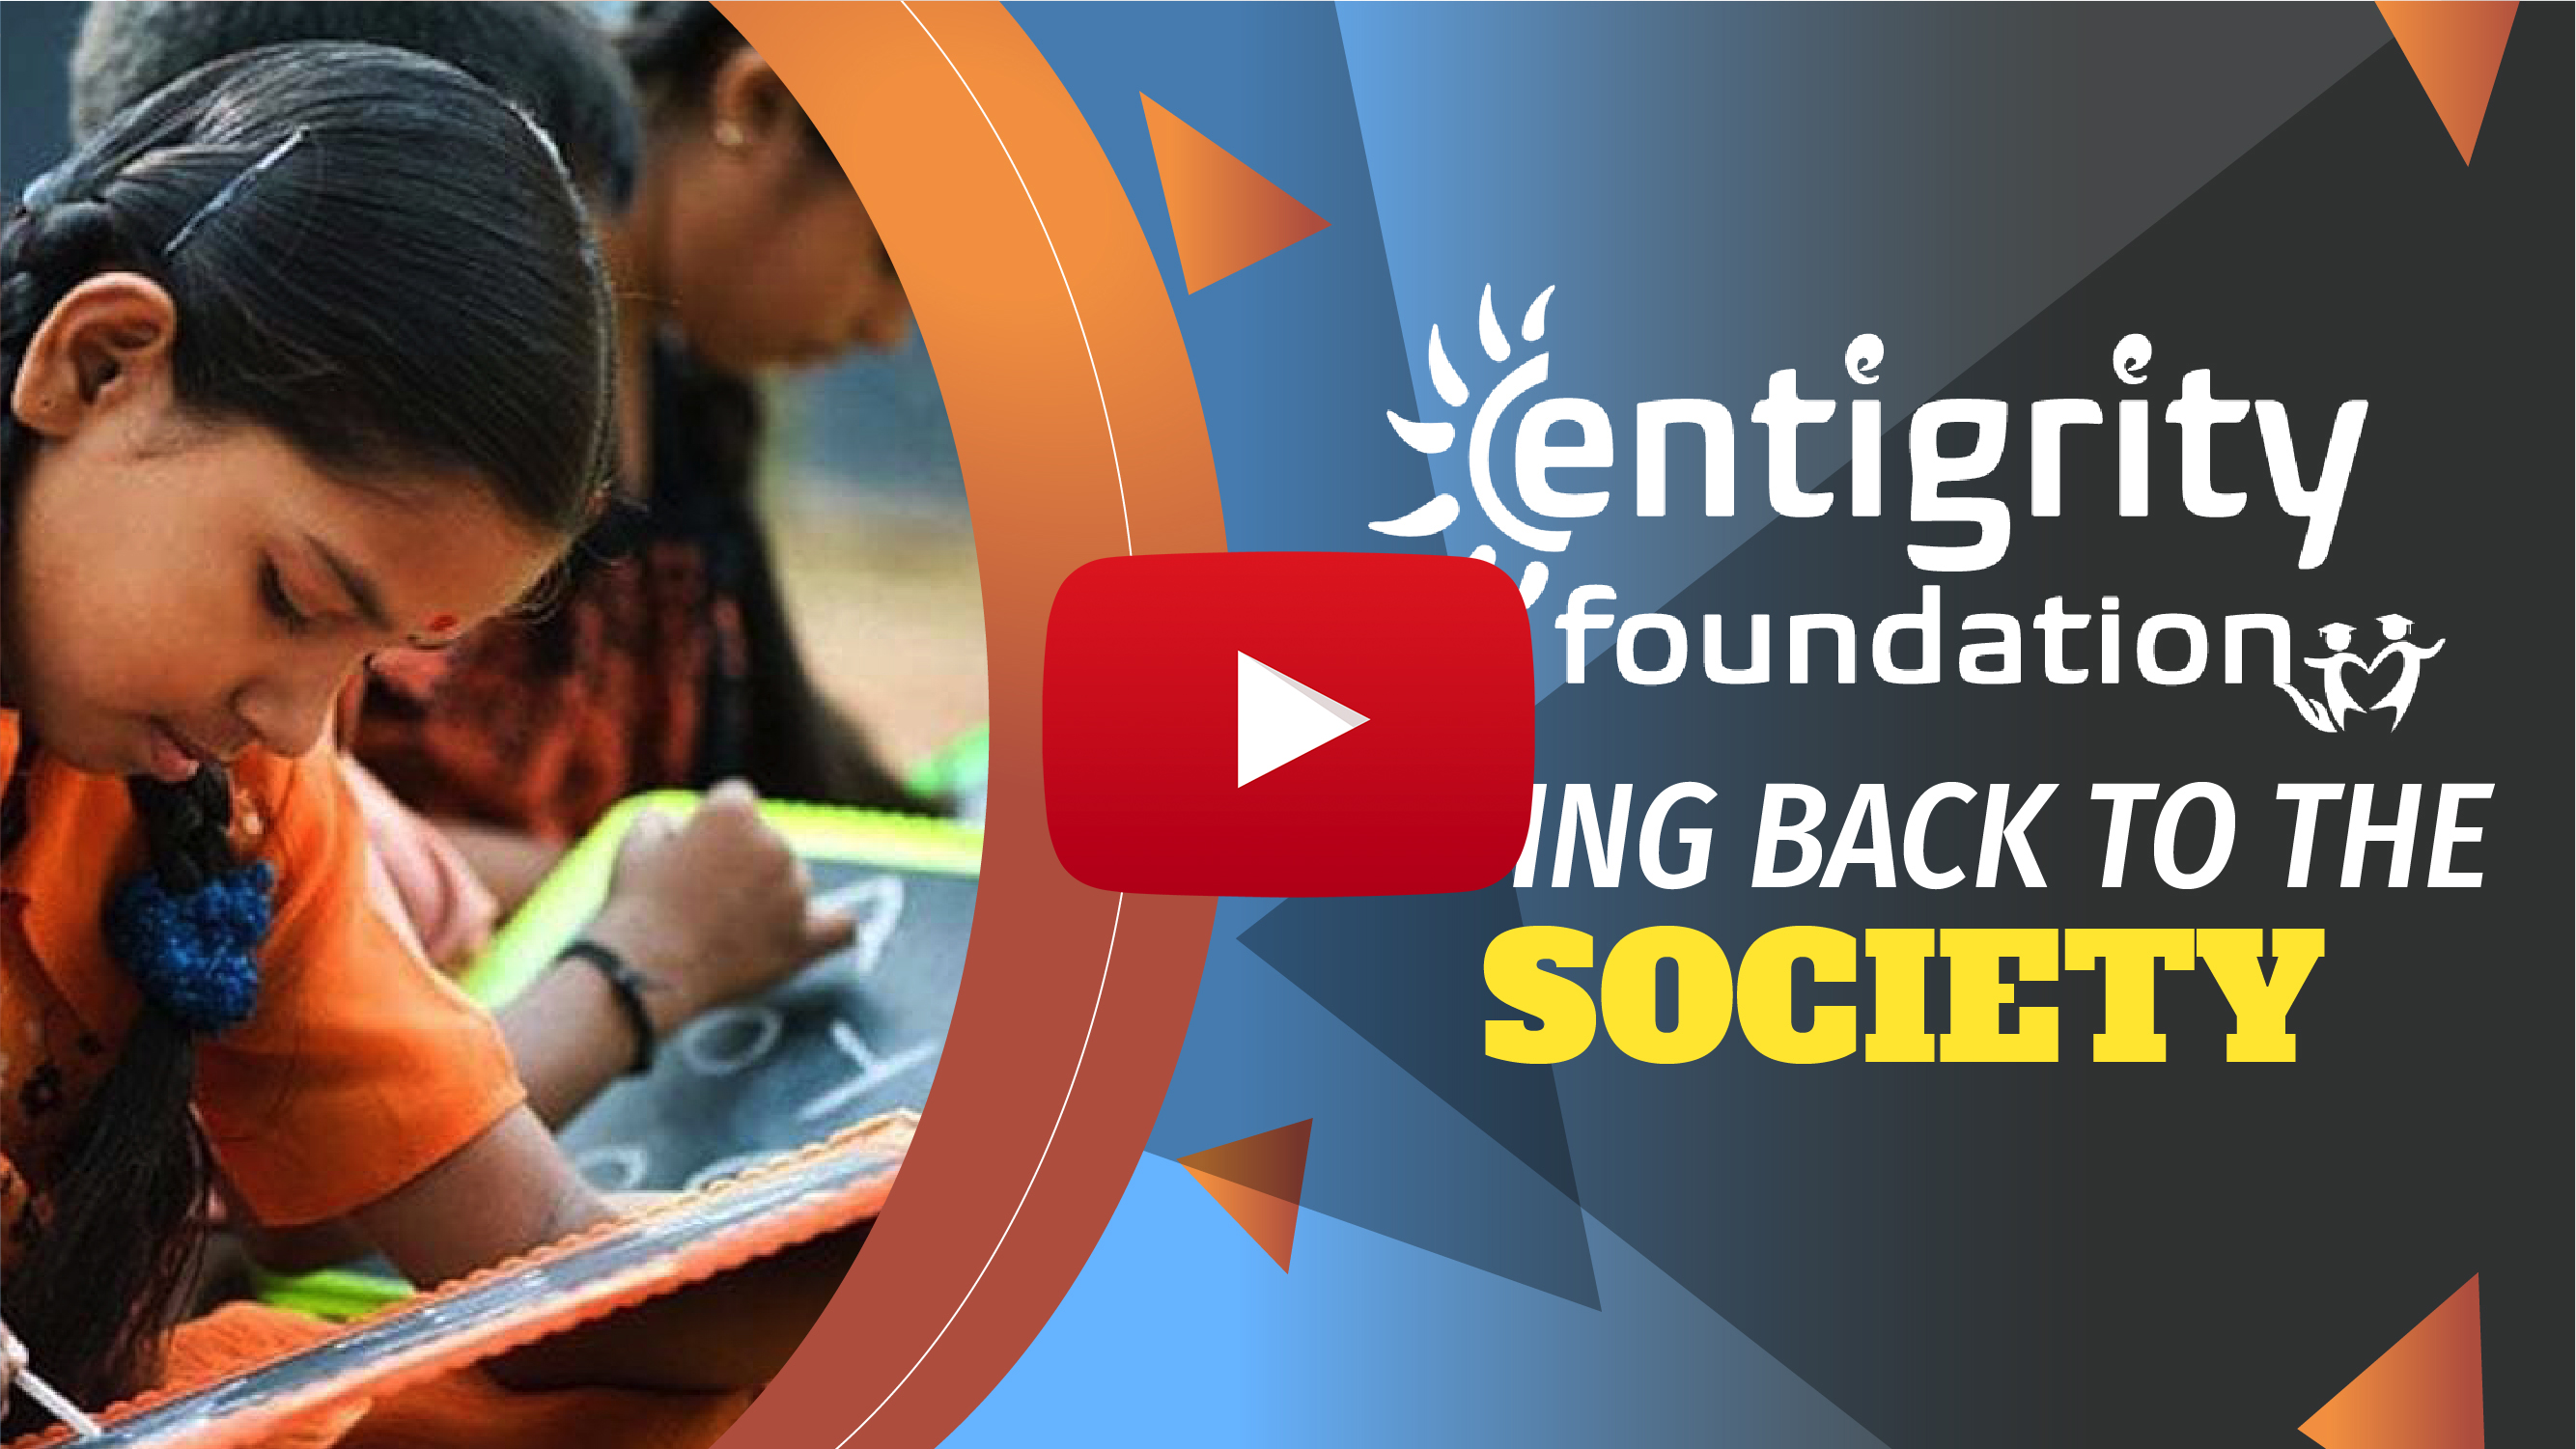 Giving Back Video